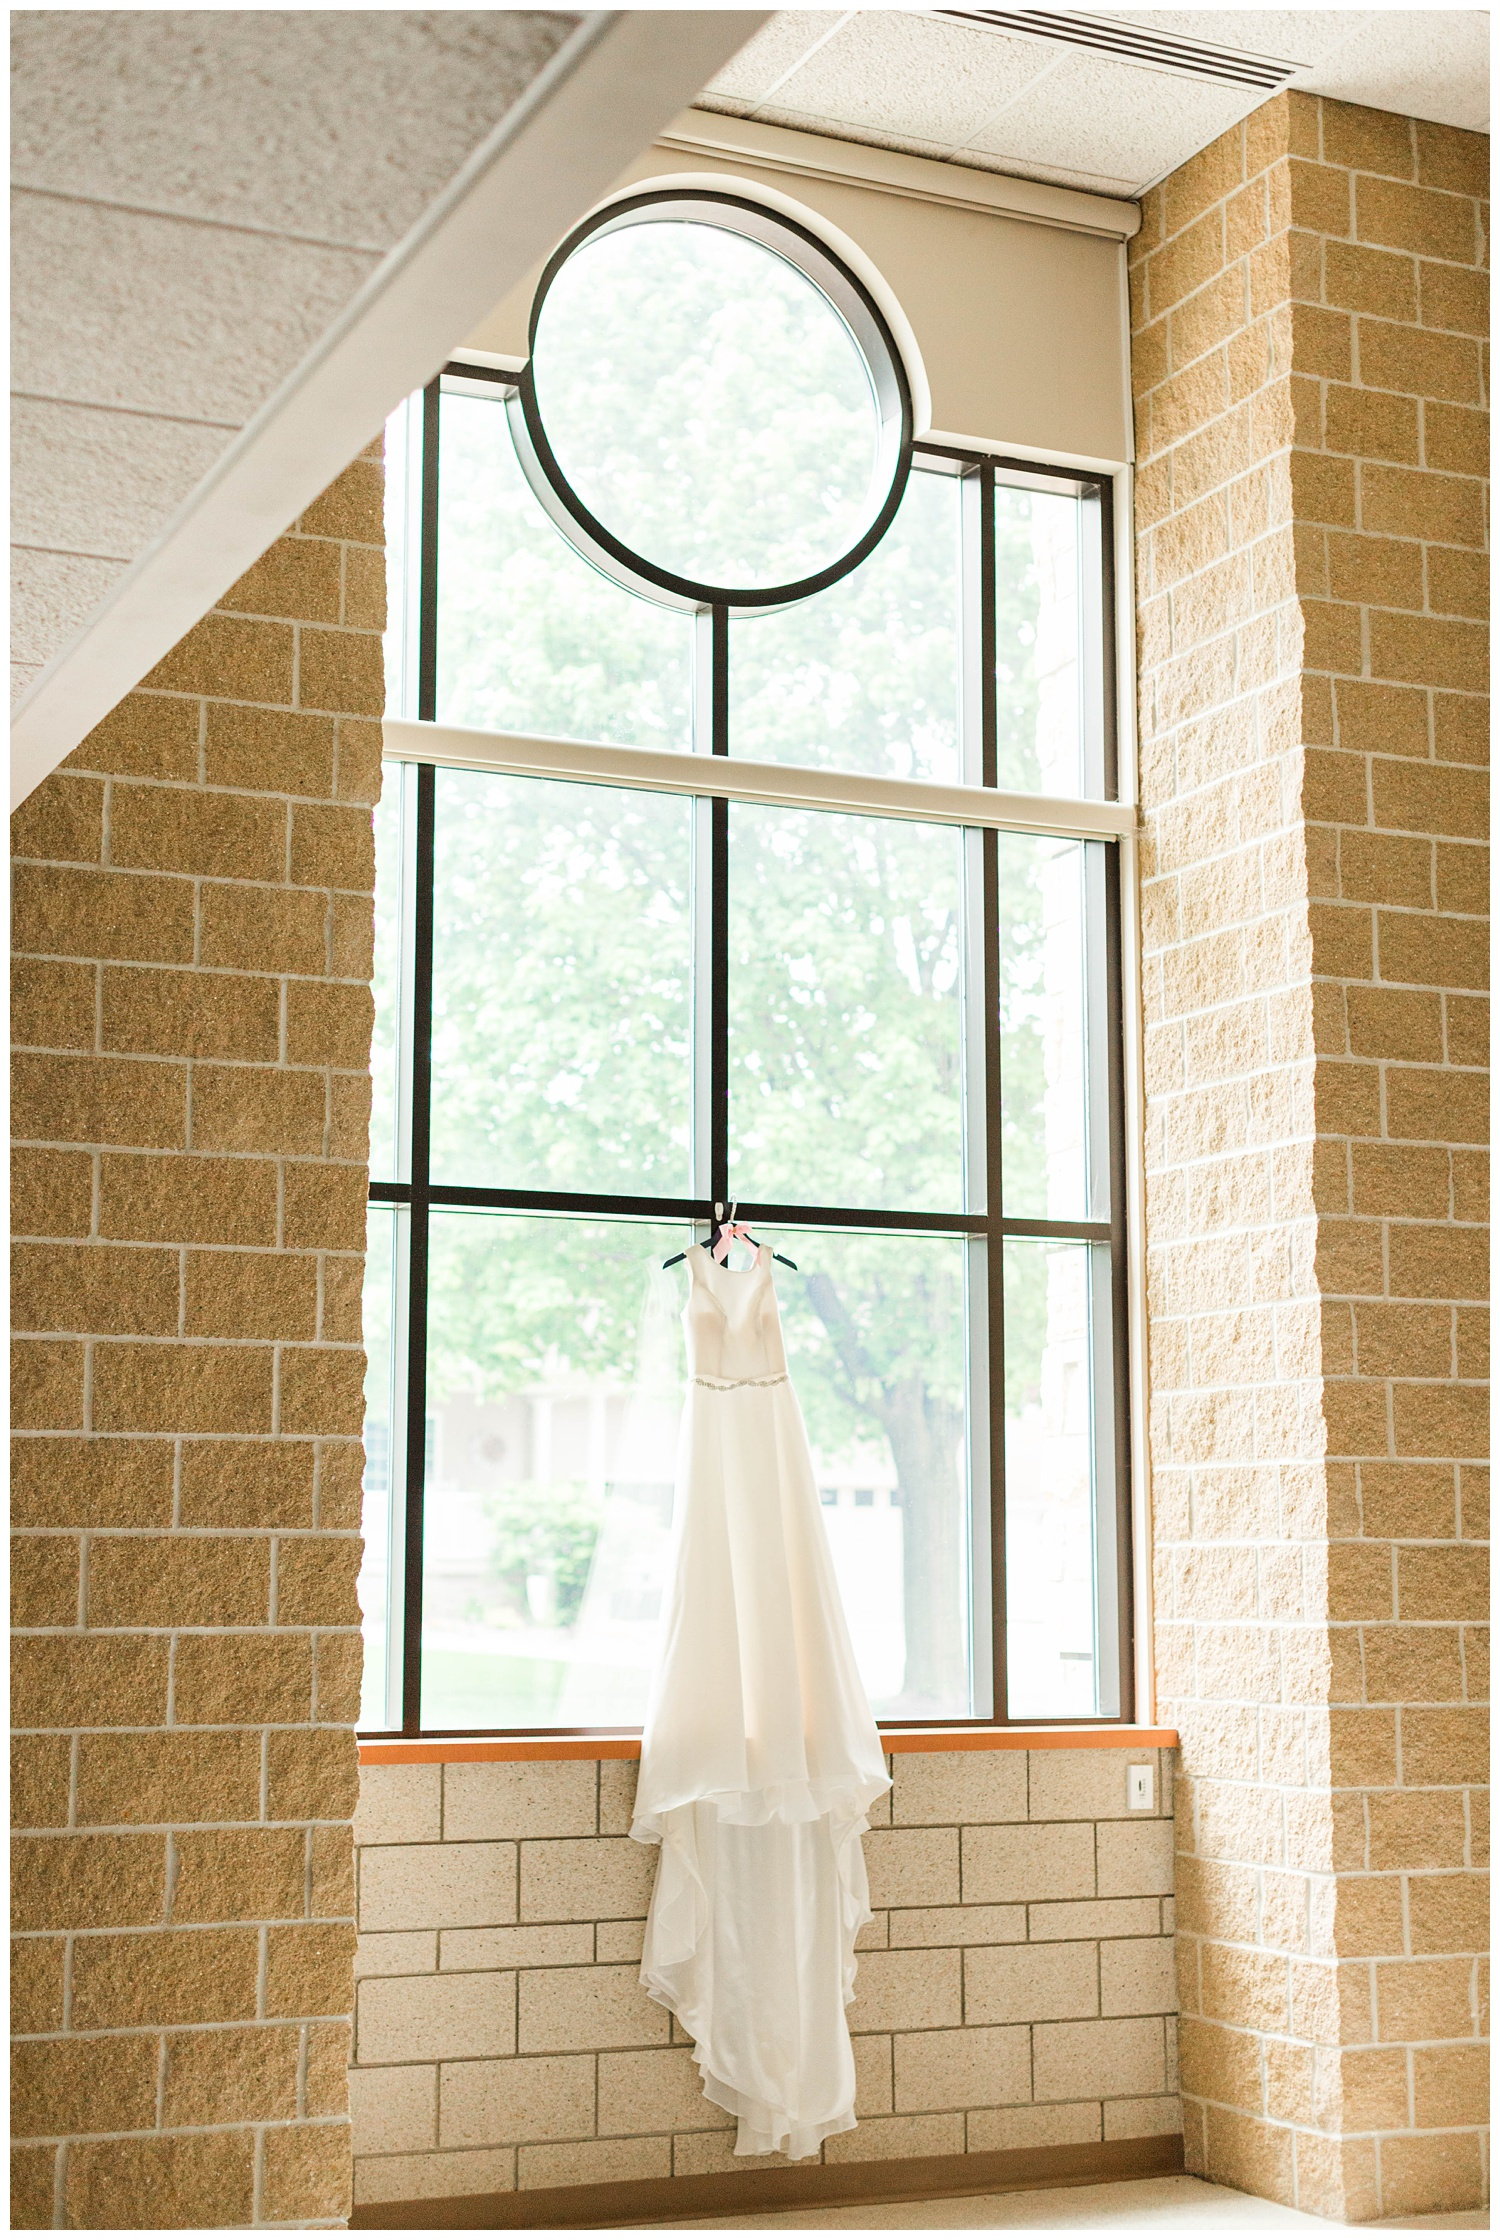 Ever London wedding dress by Justin Alexander hangs in the church window | CB Studio